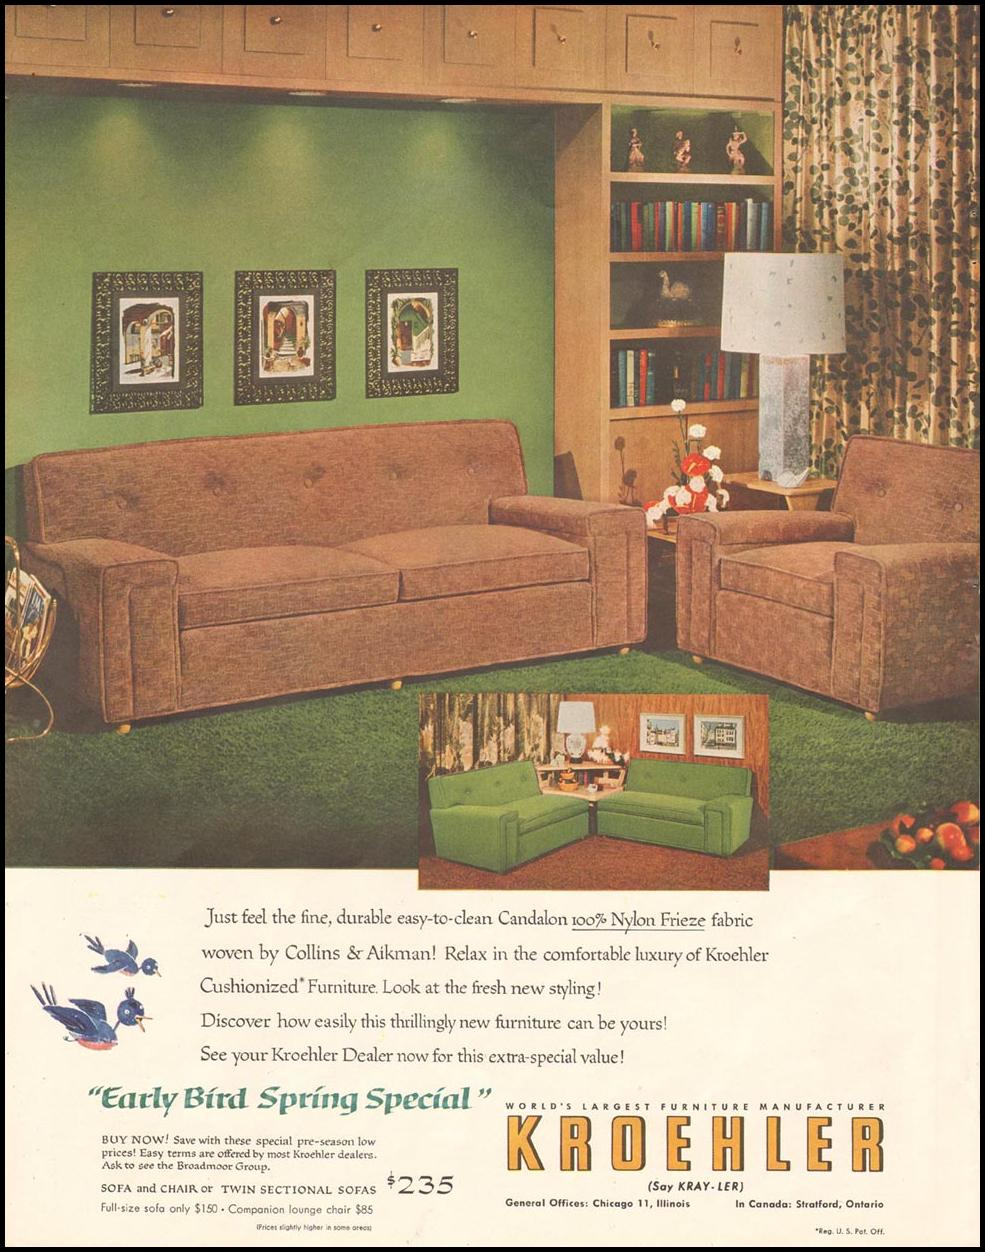 KROEHLER FURNITURE LADIES' HOME JOURNAL 03/01/1954